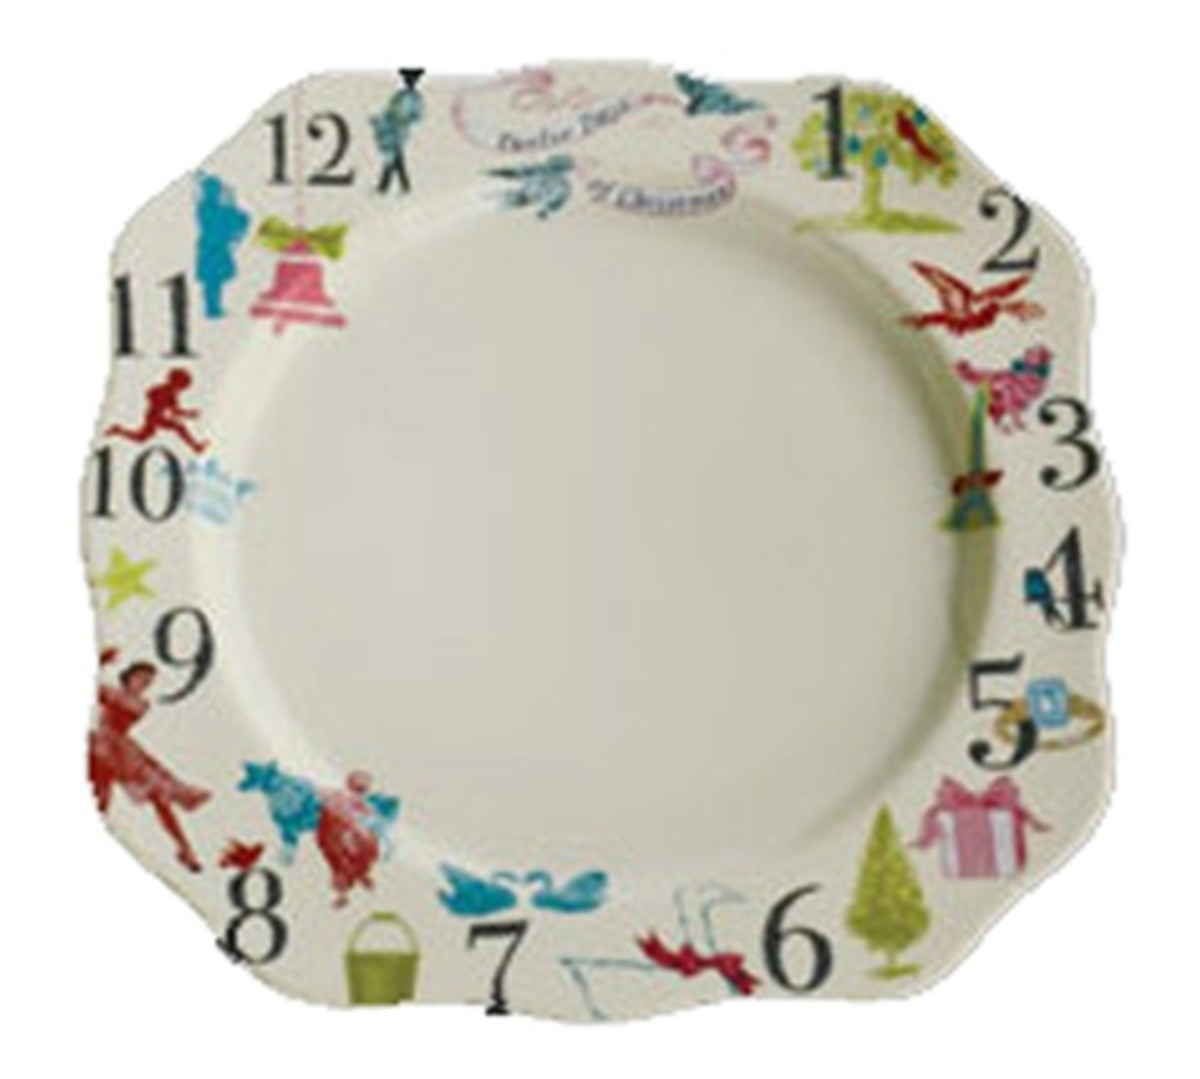 12 Days of Christmas Plate